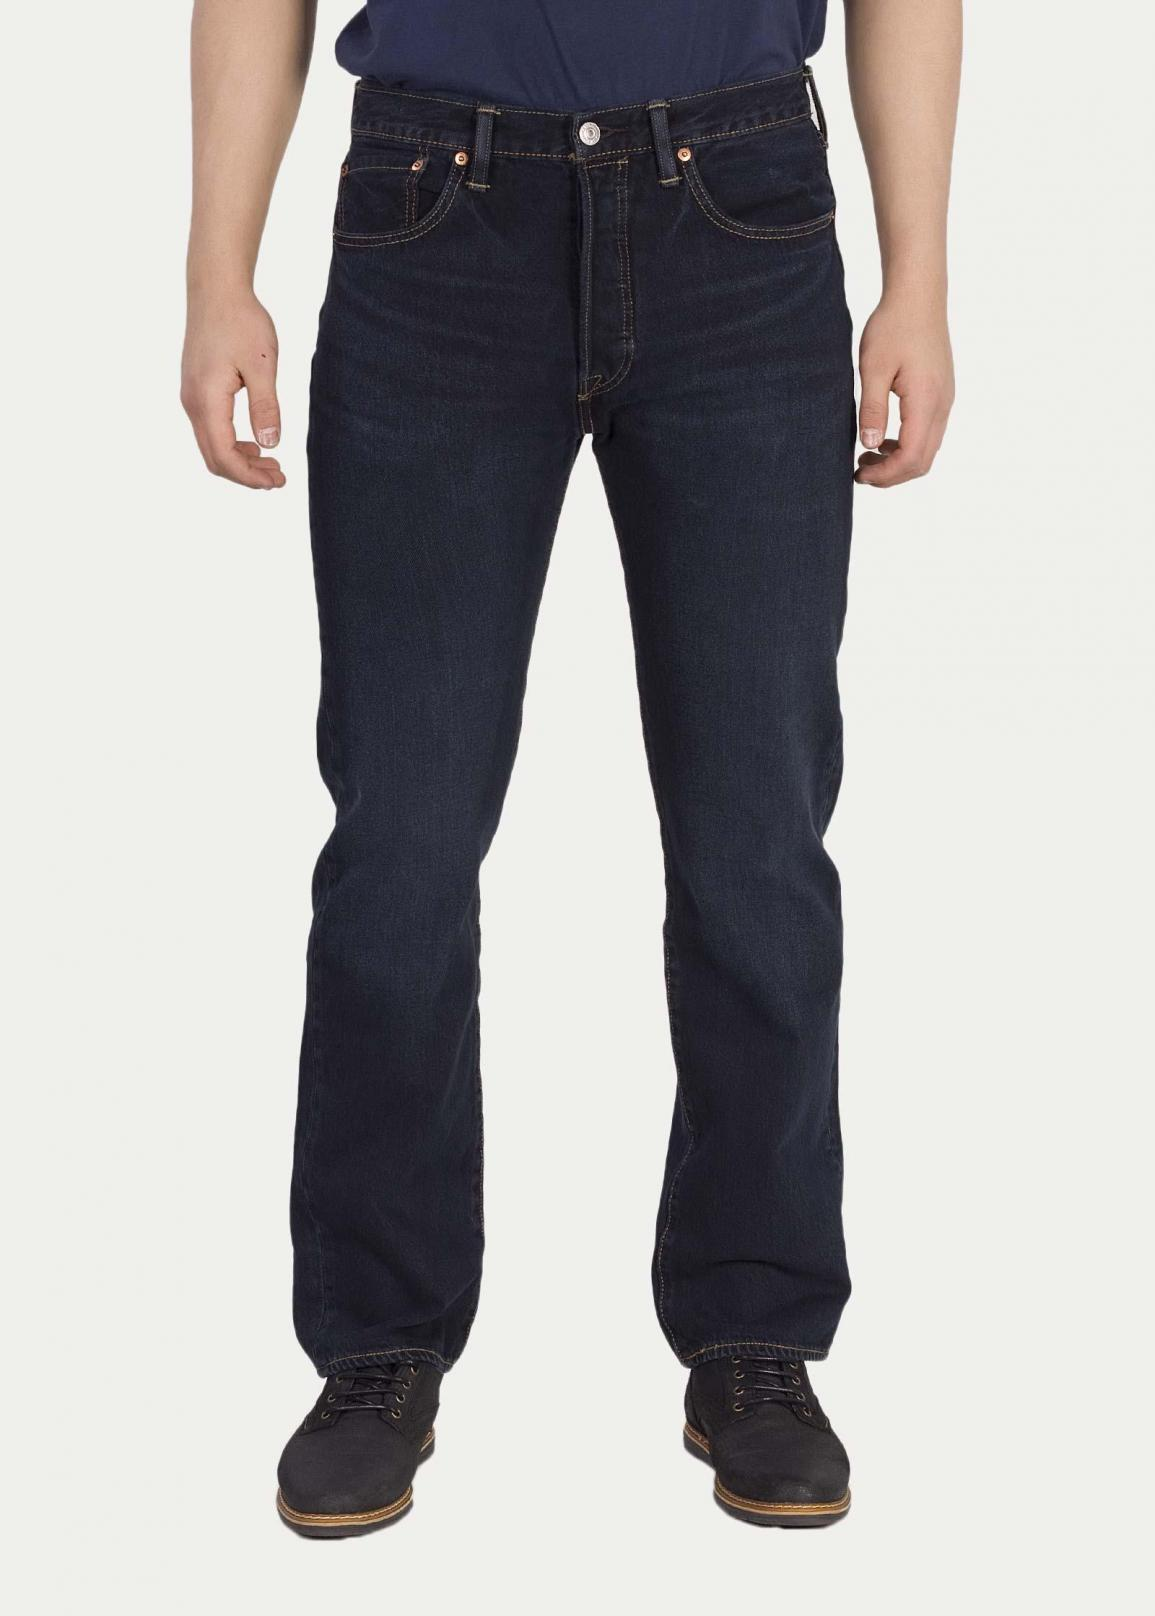 Levi's® 501® Original Fit Jeans - Dark Hours